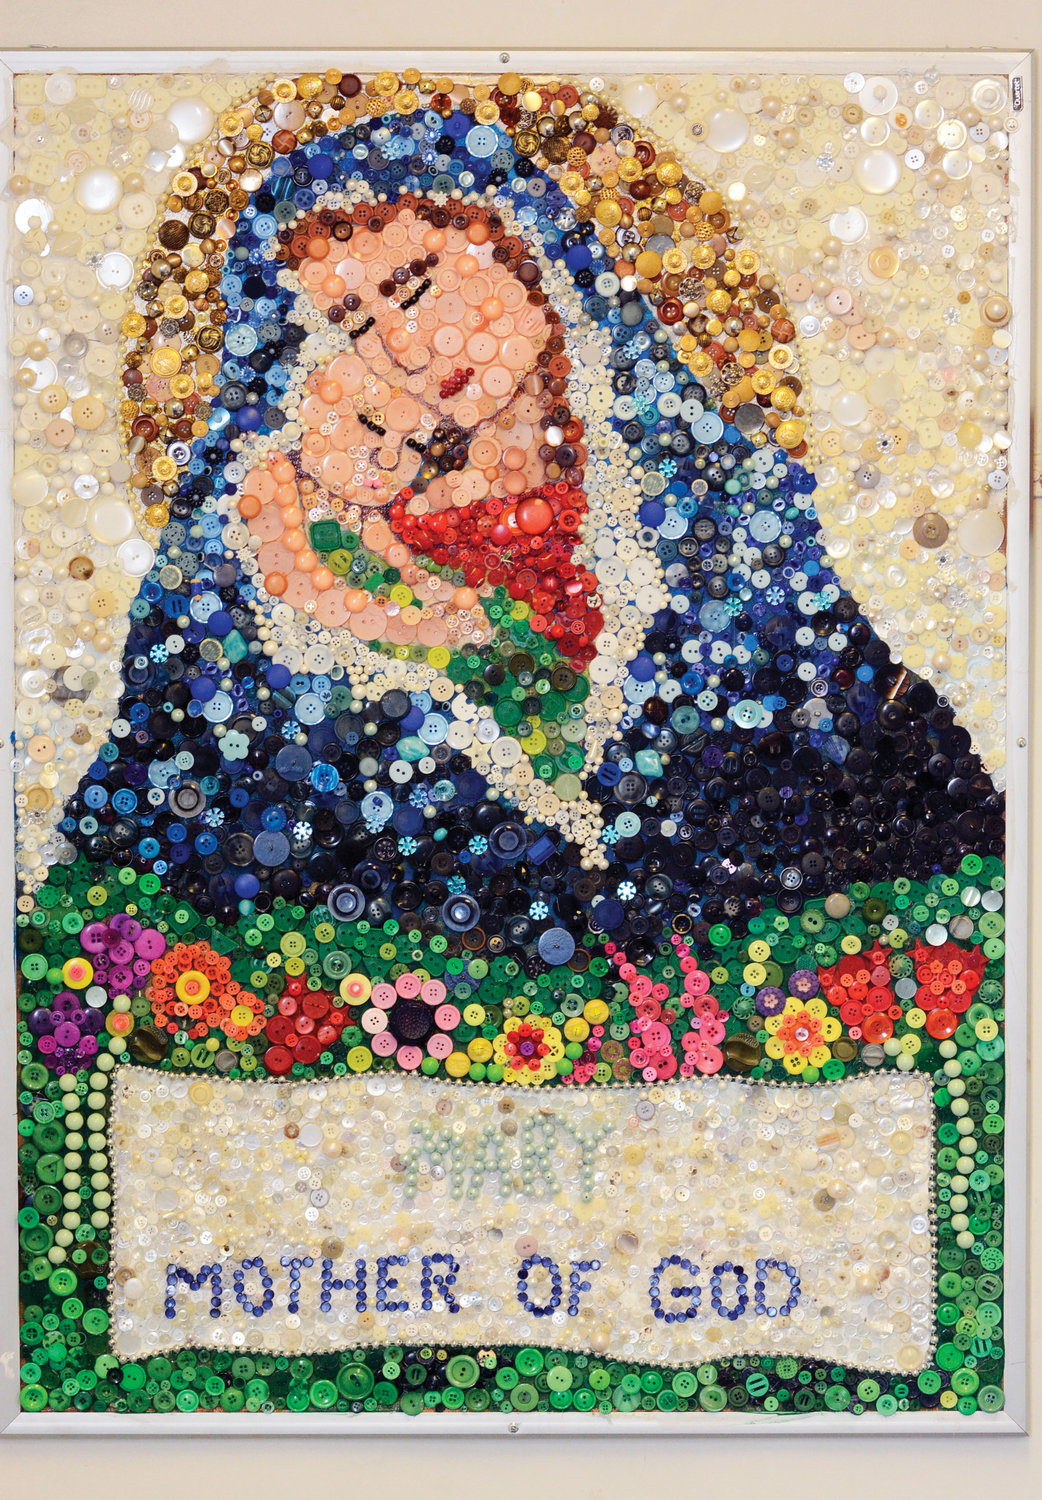 BEAUTY OF BUTTONS—About 2,500 buttons were used to create a colorful image of Madonna and Child at Holy Family School in New Rochelle.